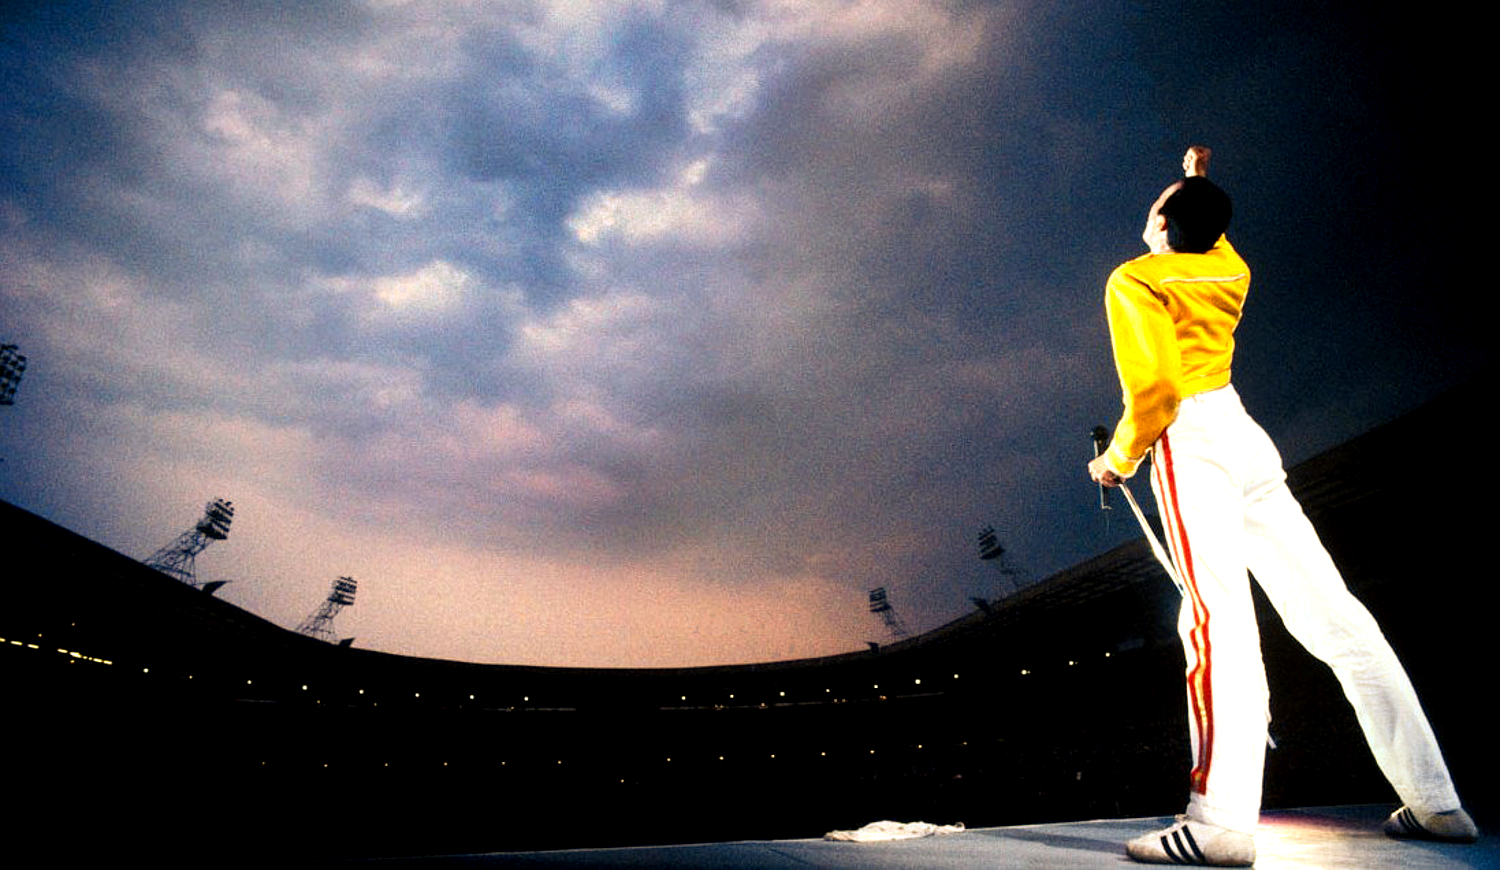 freddie-mercury-at-wembley-esqrever-bio